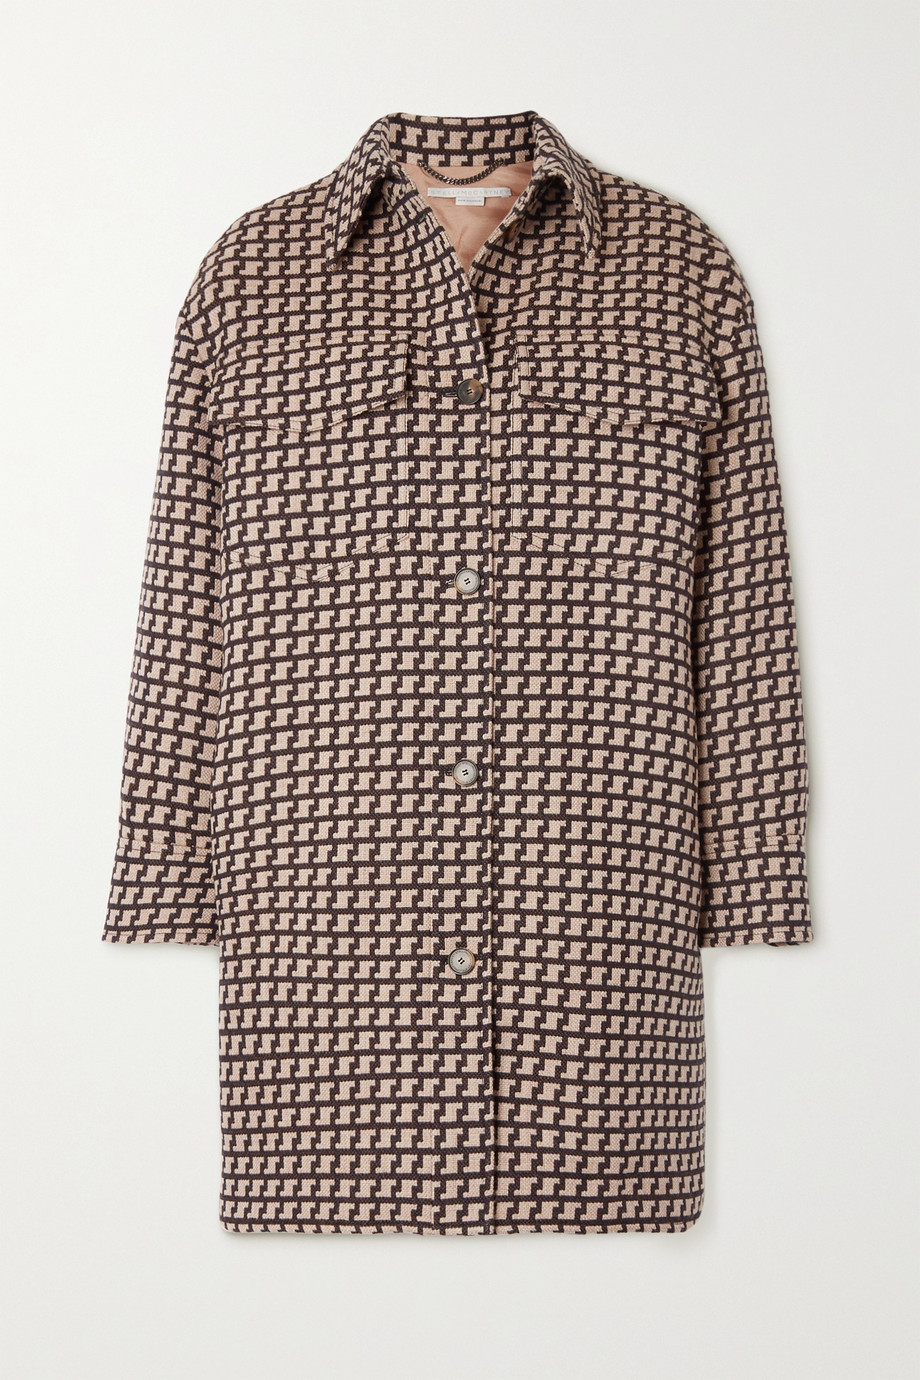 Stella McCartney Kerry oversized wool-jacquard coat